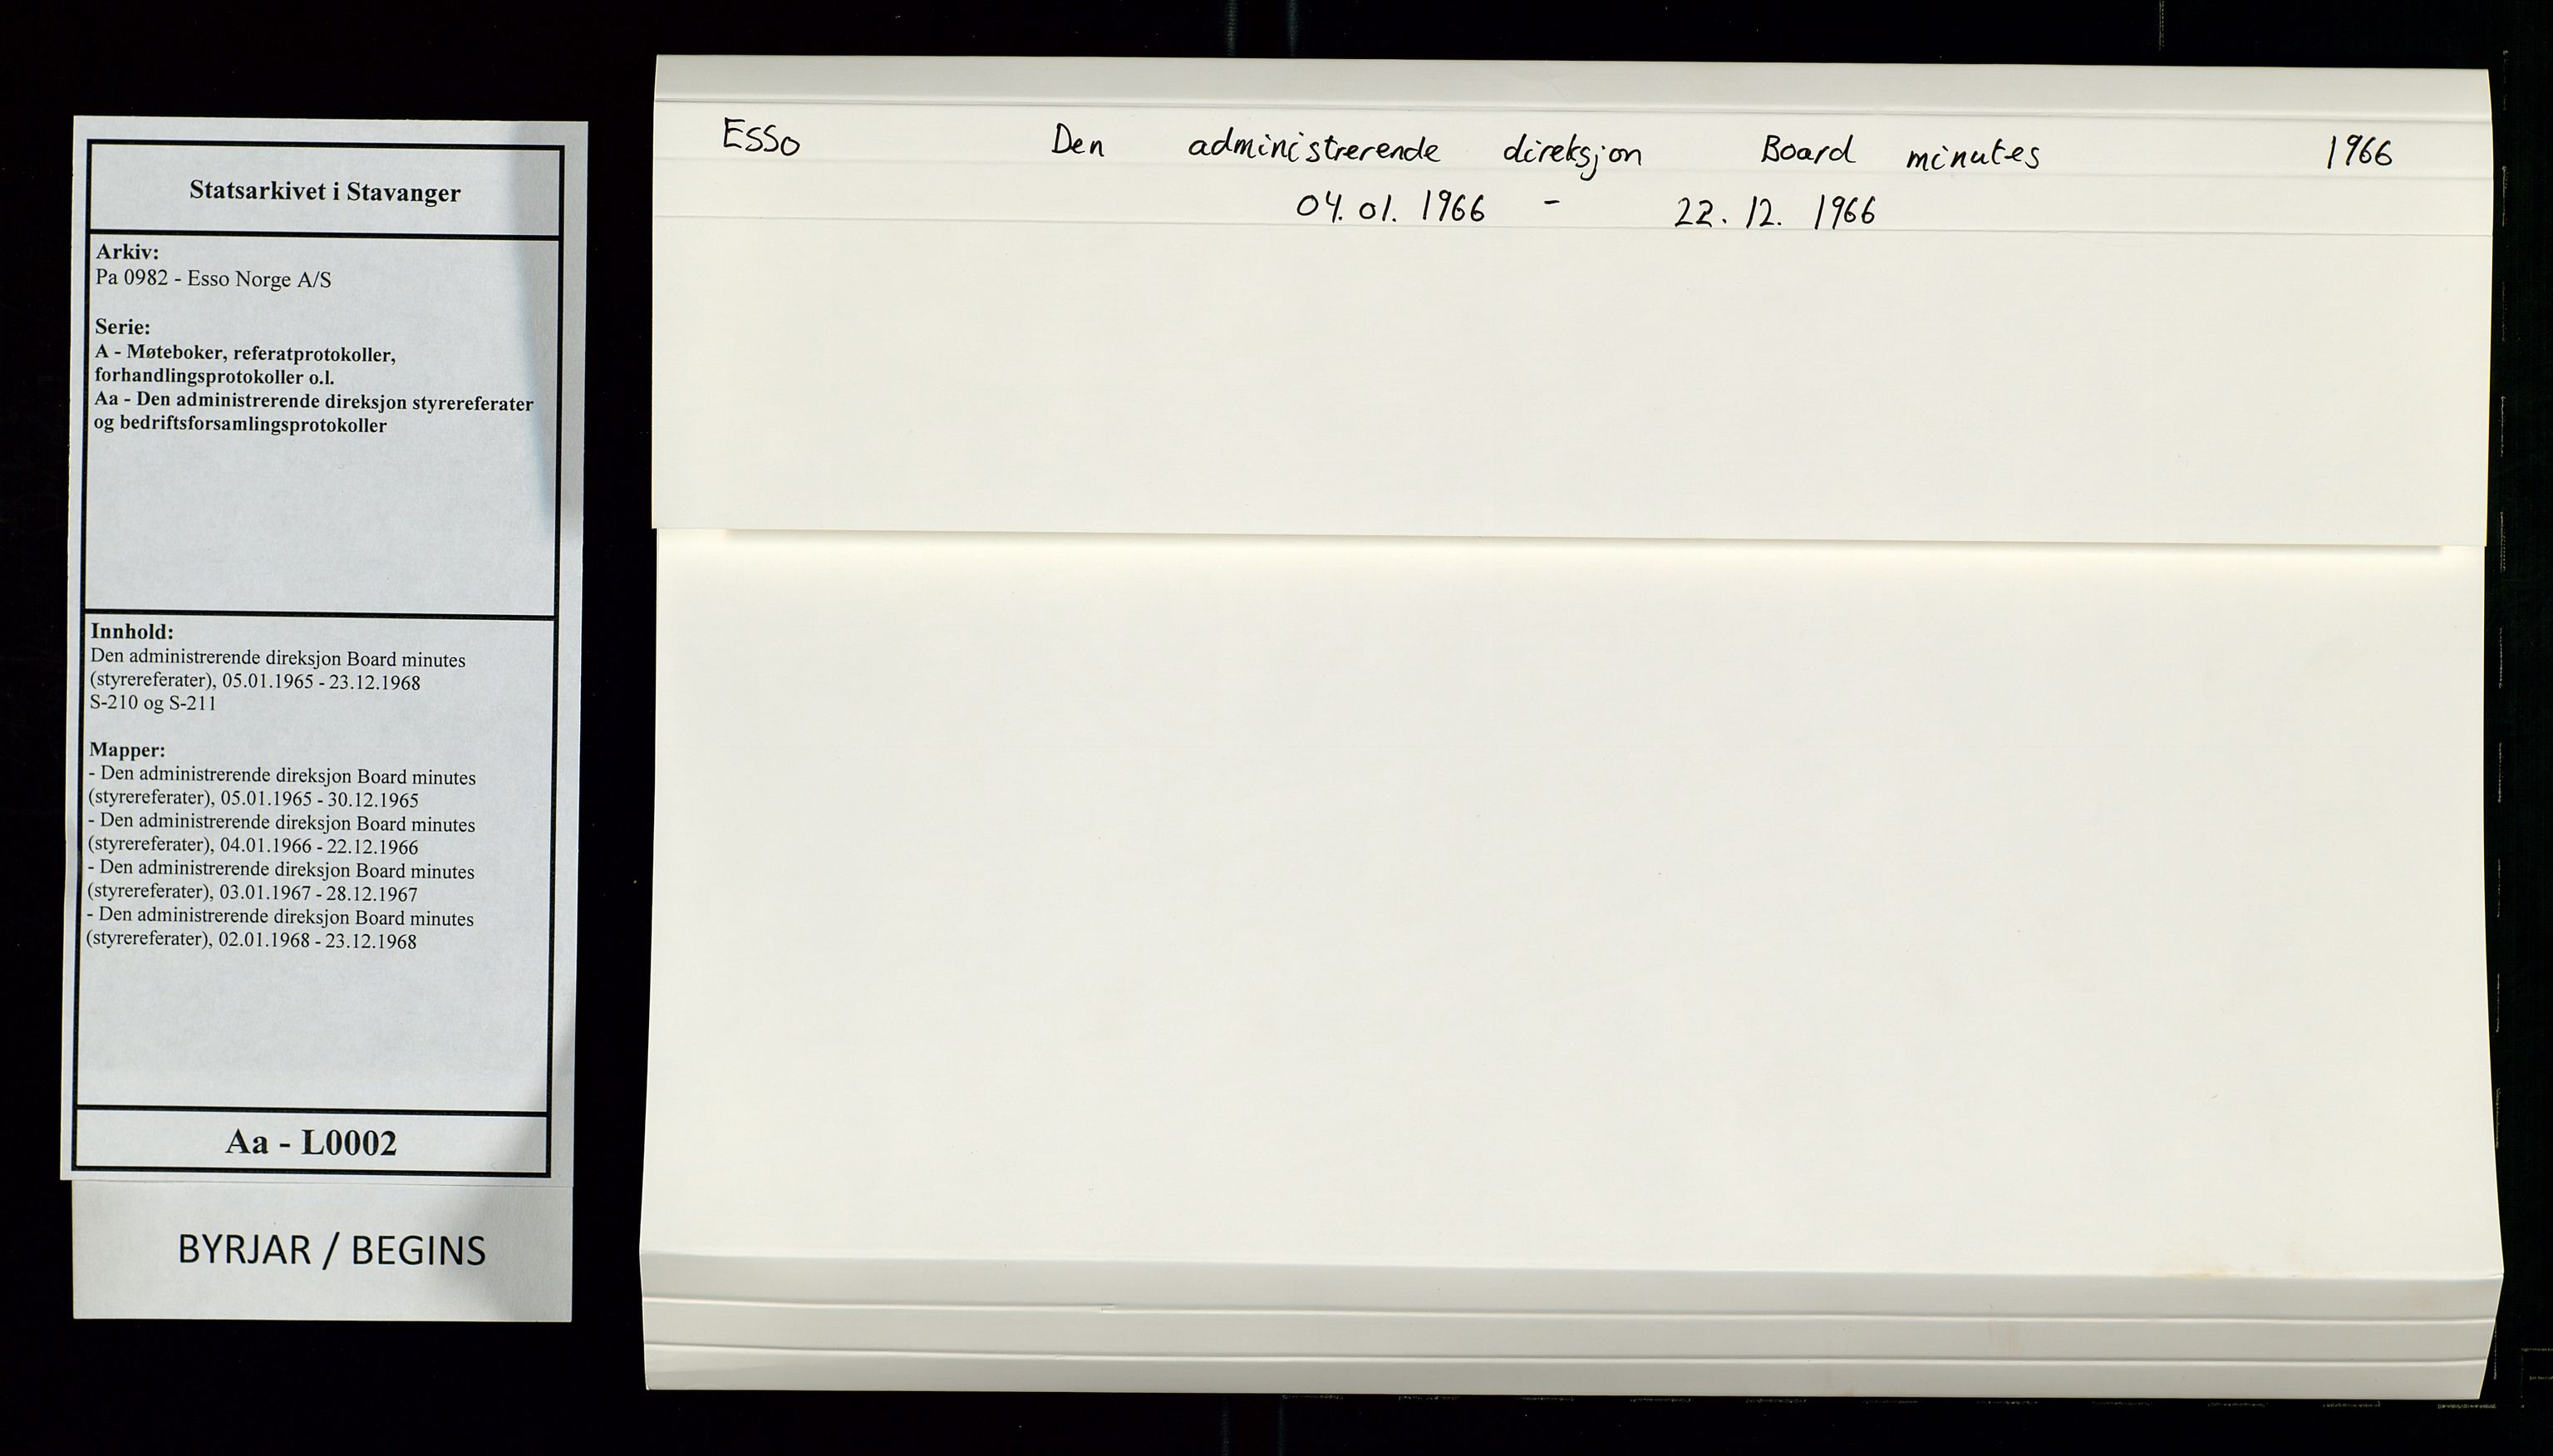 SAST, Pa 0982 - Esso Norge A/S, A/Aa/L0002: Den administrerende direksjon Board minutes (styrereferater), 1966, s. 1